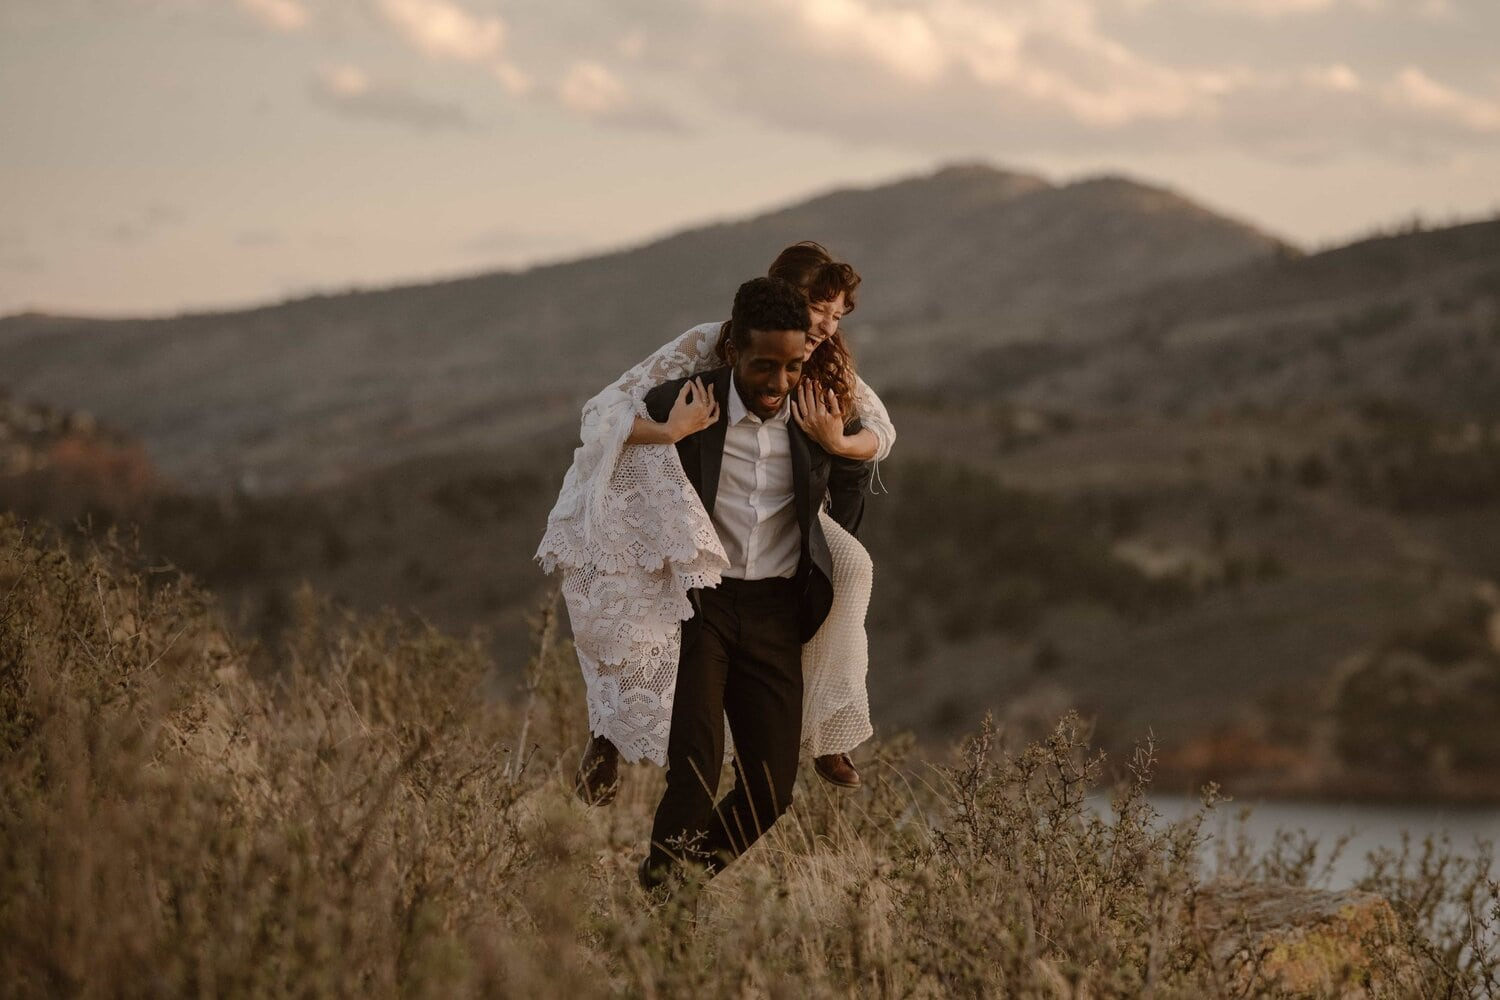 Groom carries bride on his back while walking.